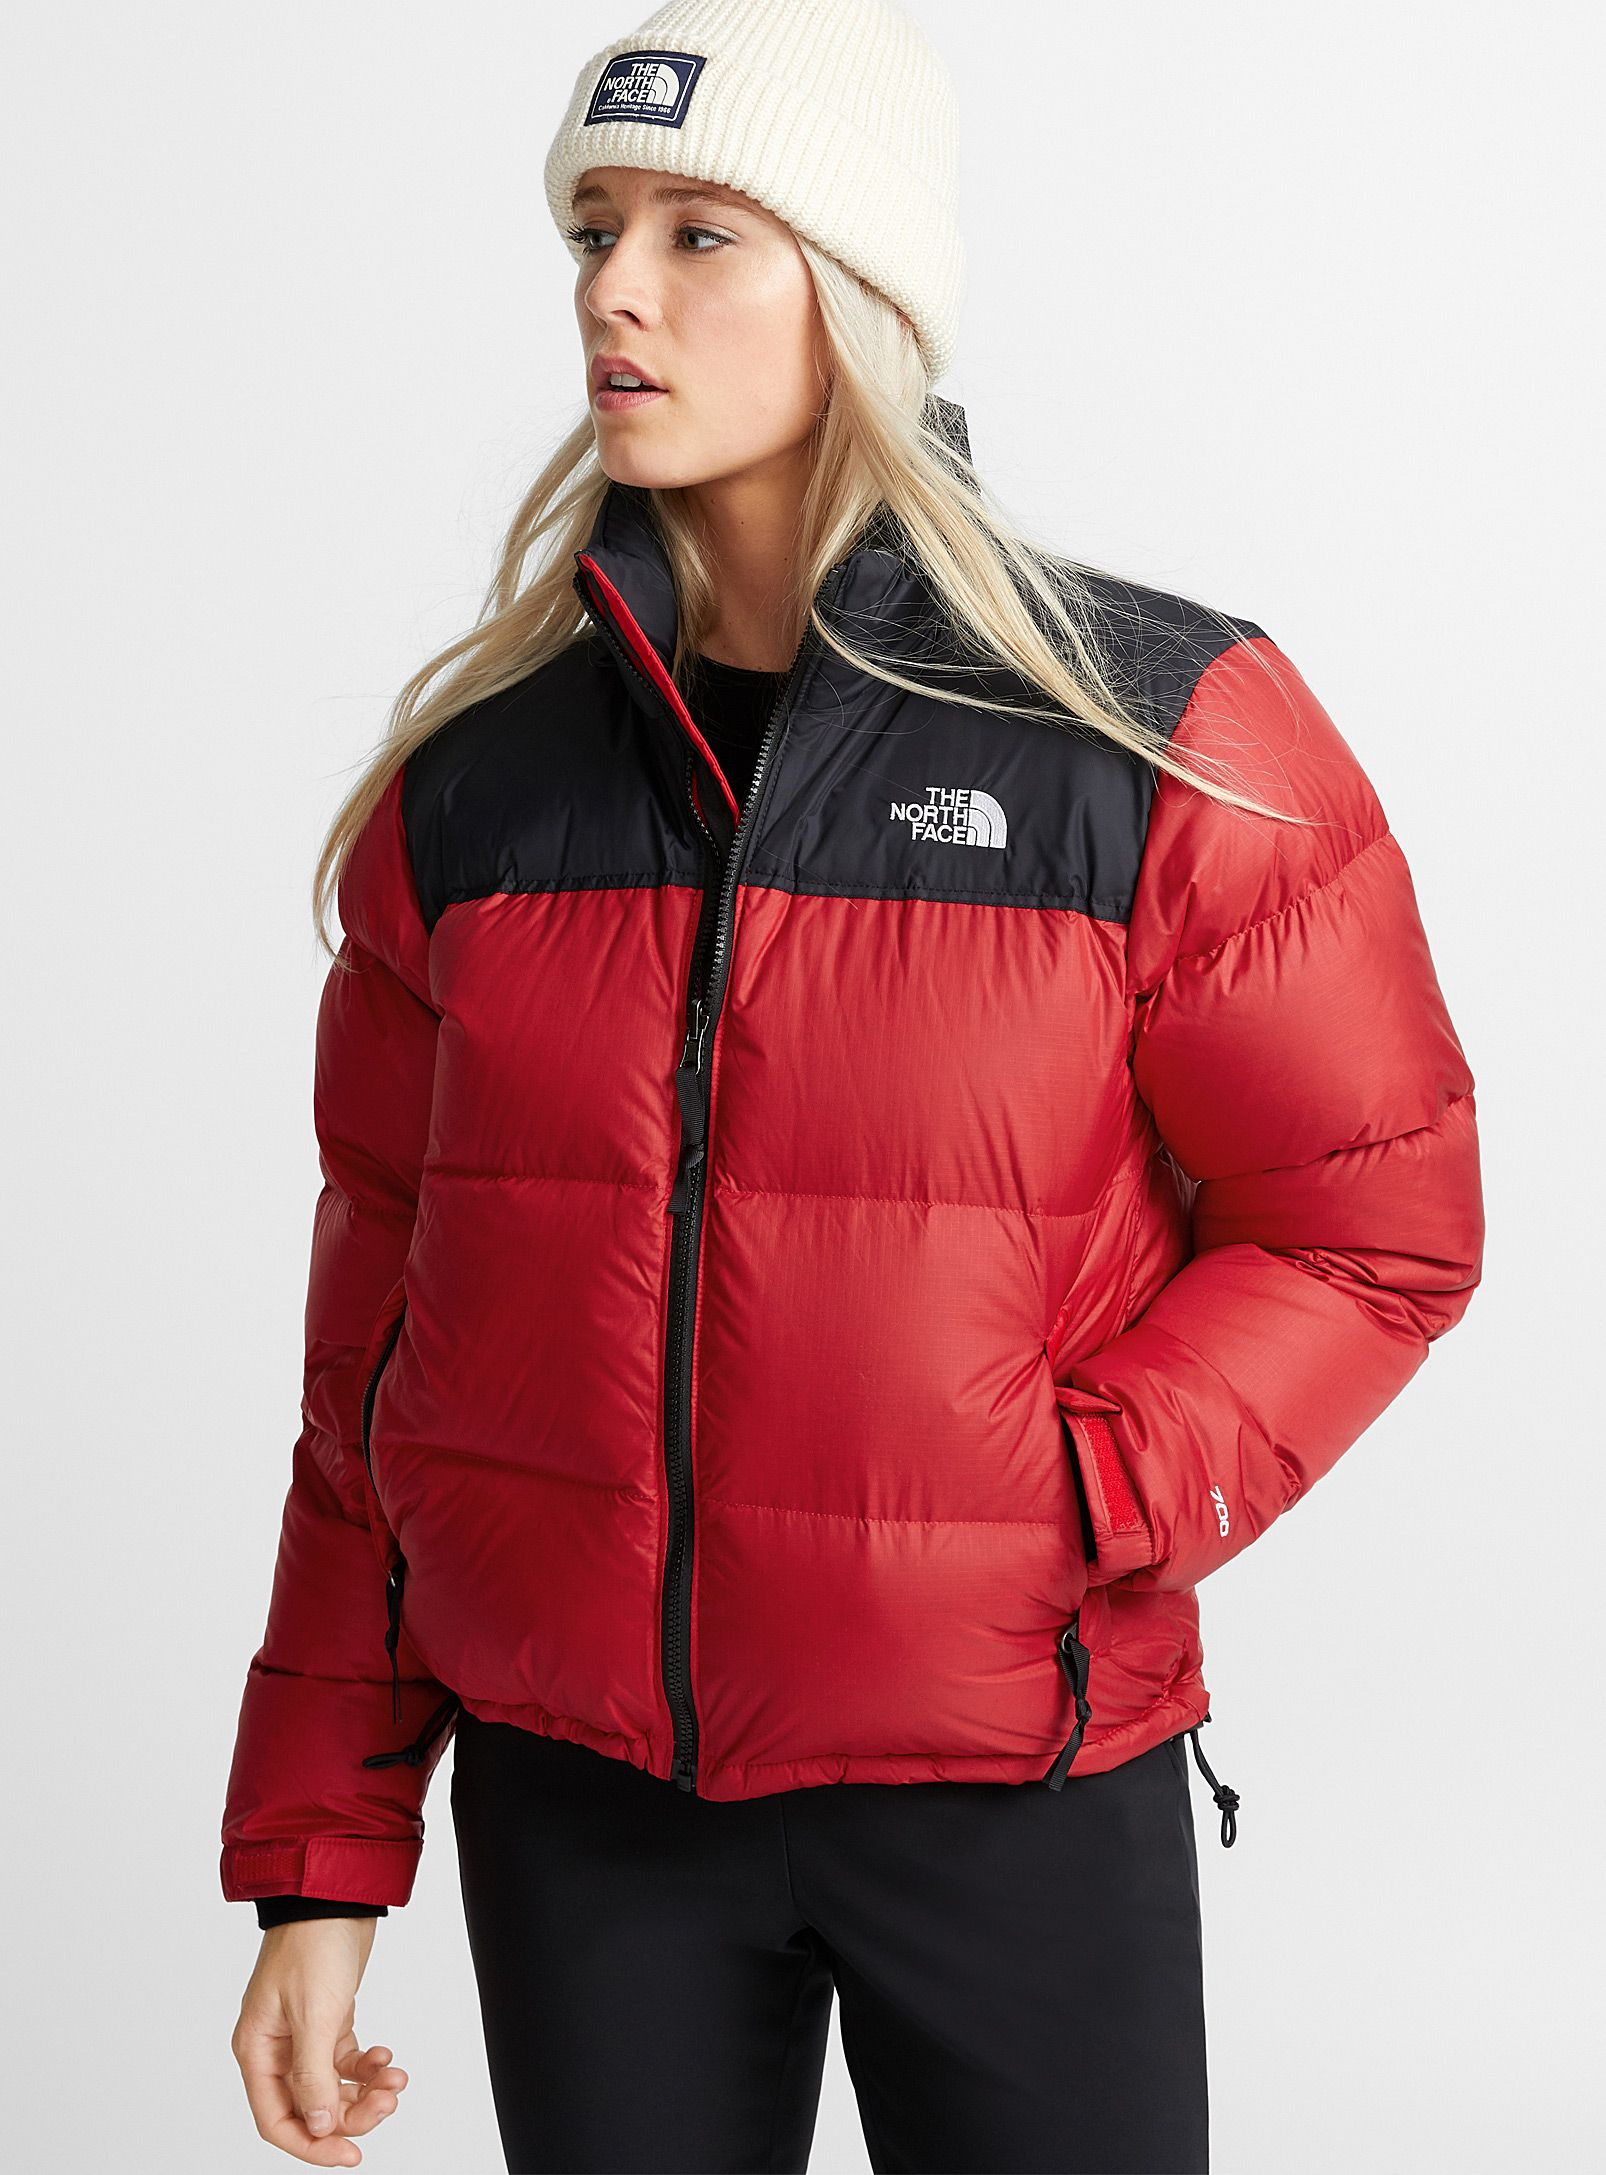 Pin By Maudie Brown On Sexton Style Skiing Outfit North Face Jacket North Face Women [ 2175 x 1606 Pixel ]